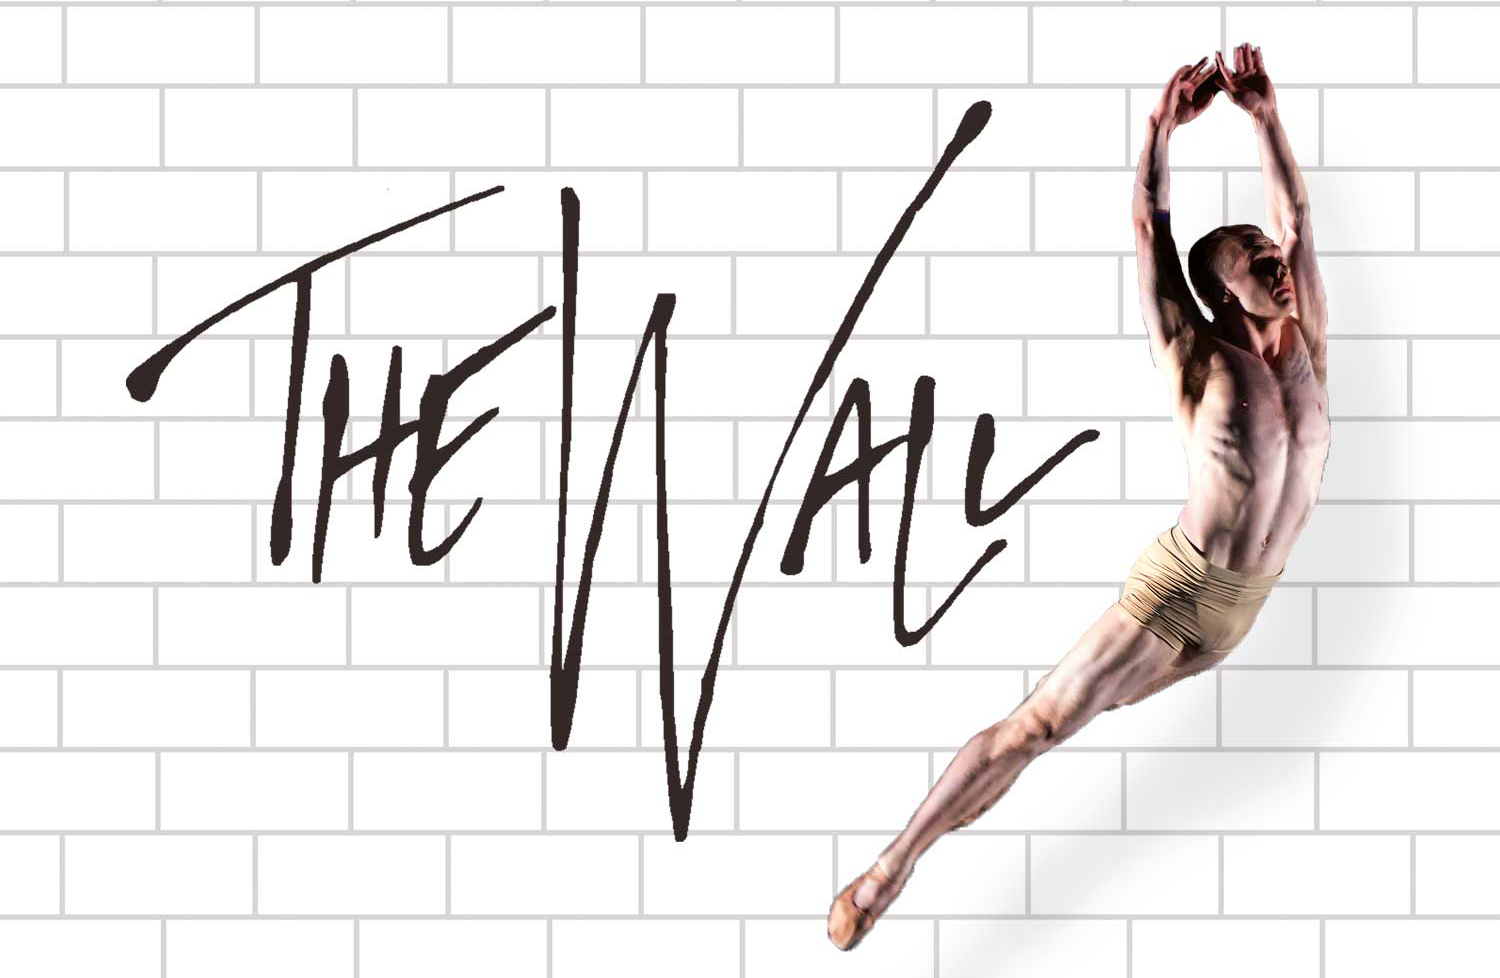 Photo by Brianne Bland. Luke Xavier in the role of pink leaps into the air in front of a white wall.